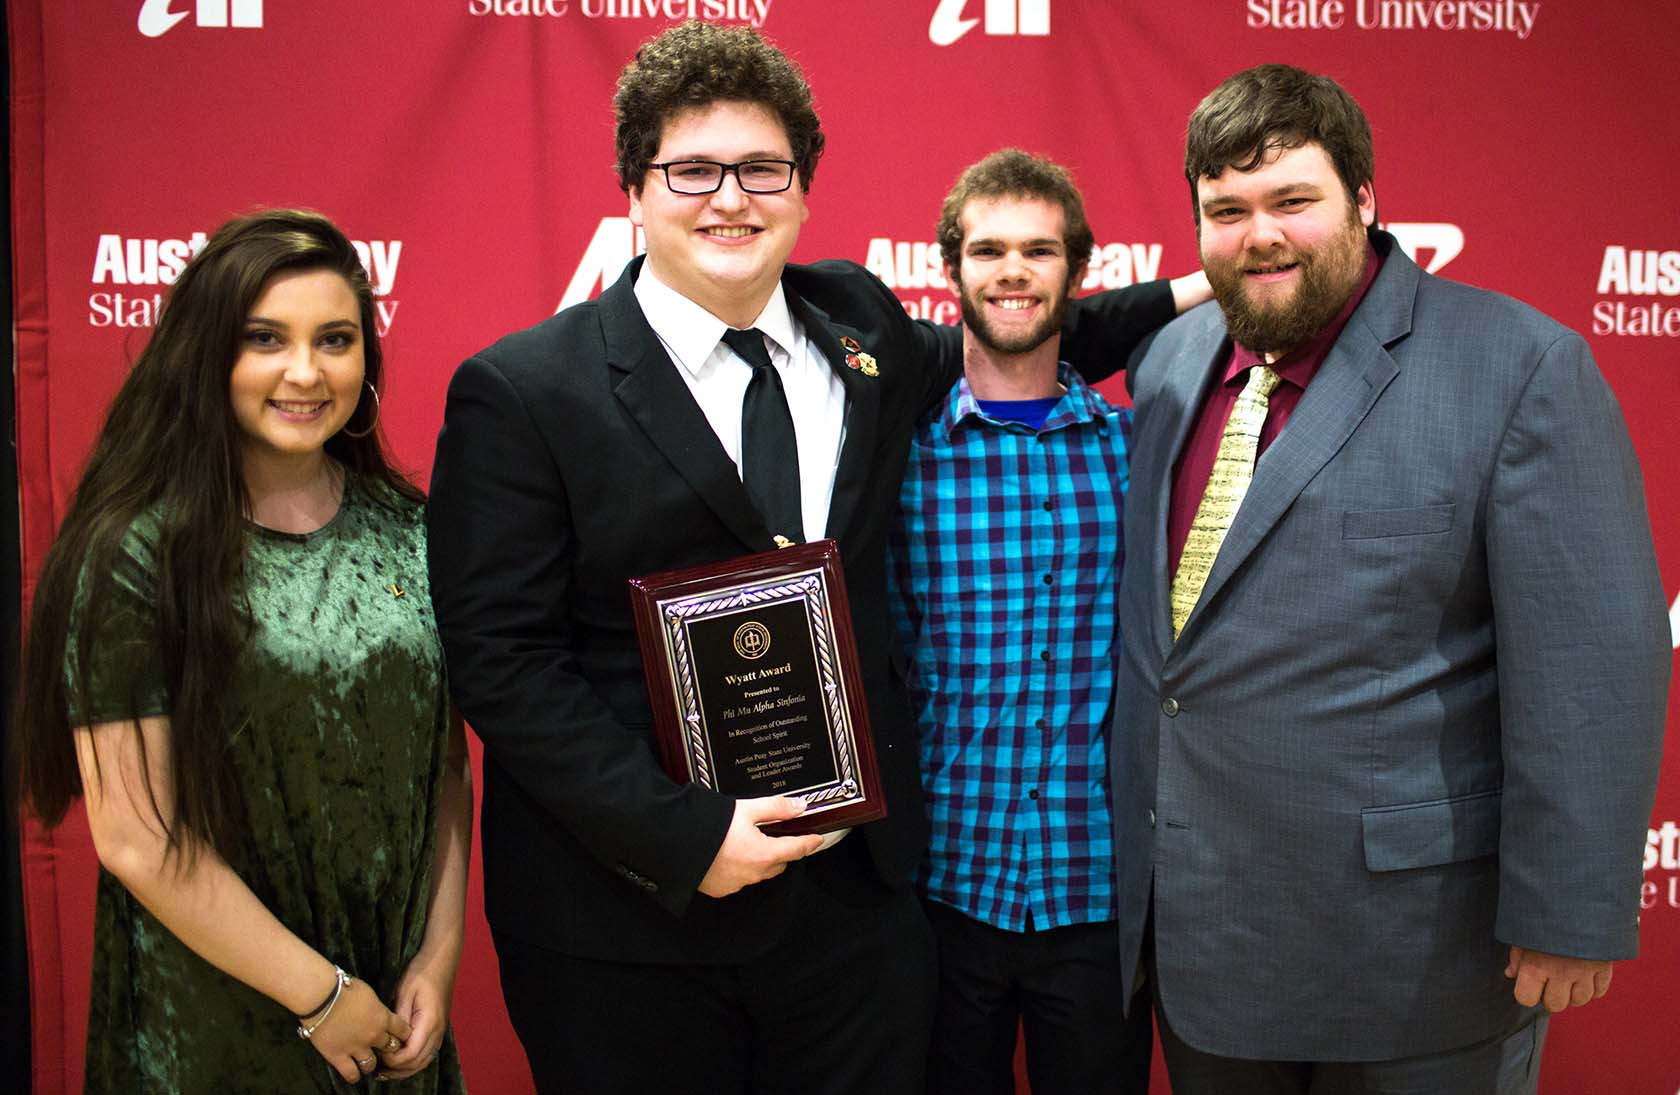 Phi Mu Alpha wins Wyatt Award